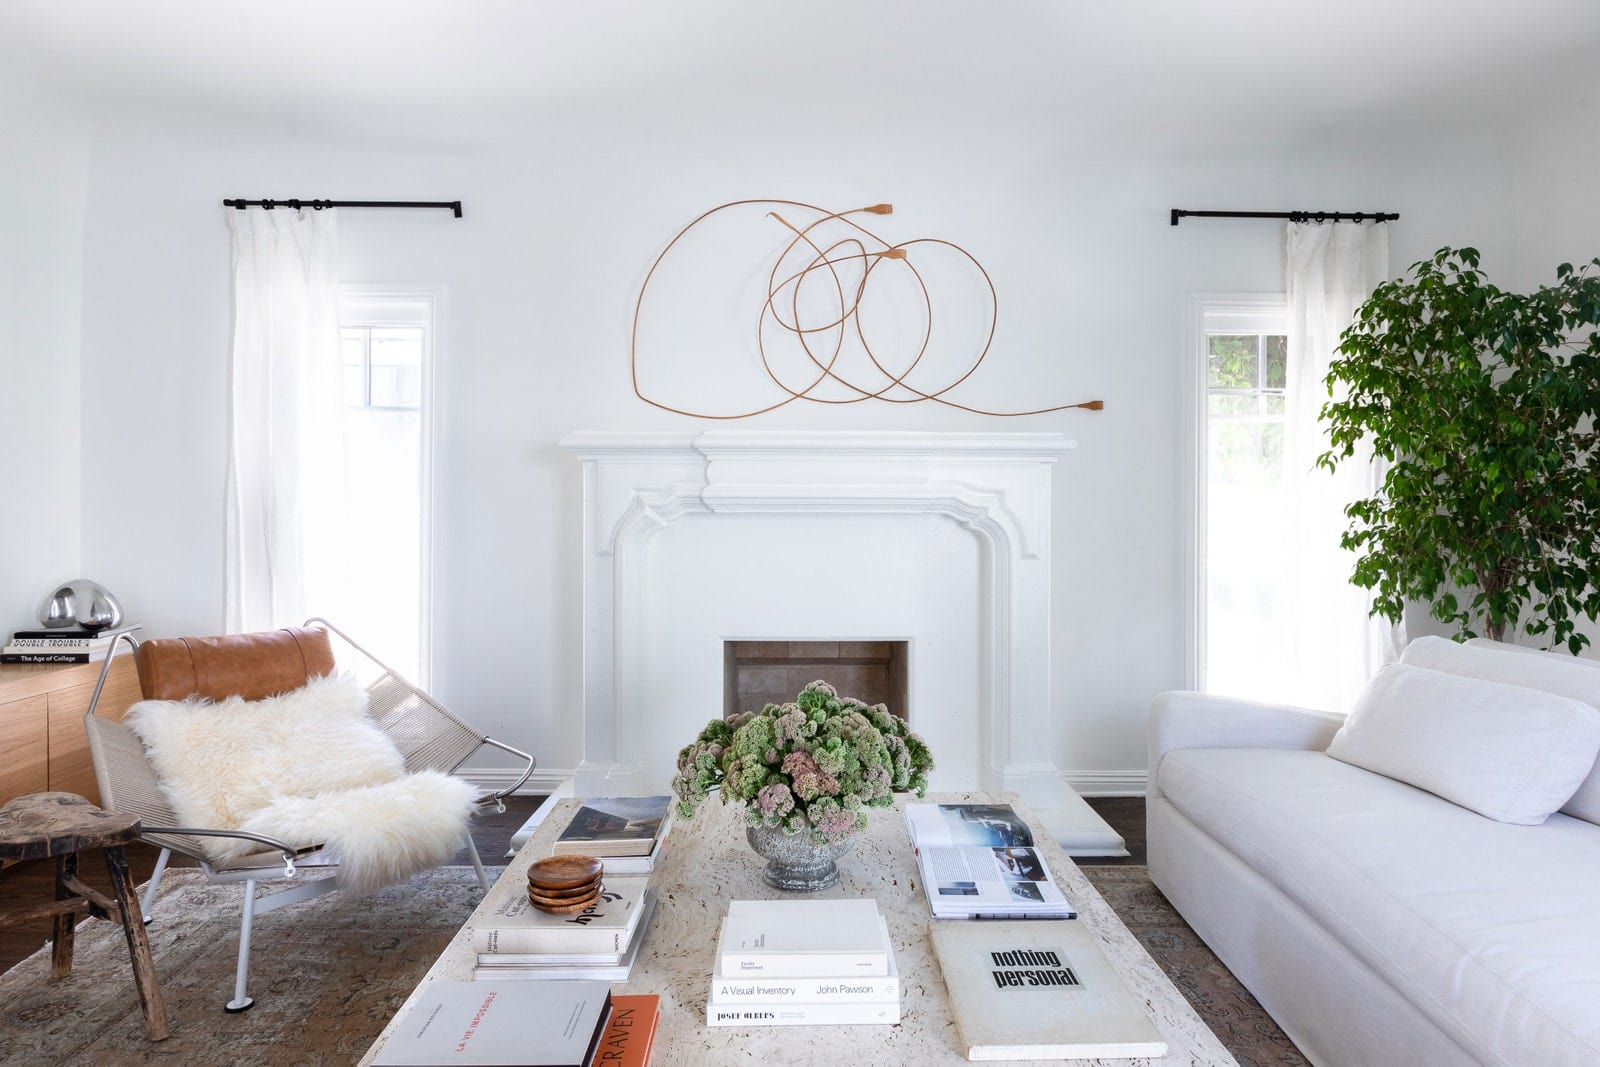 5 Ways Your Home Can Make You Feel Better (Right Now) - Bobby Berk